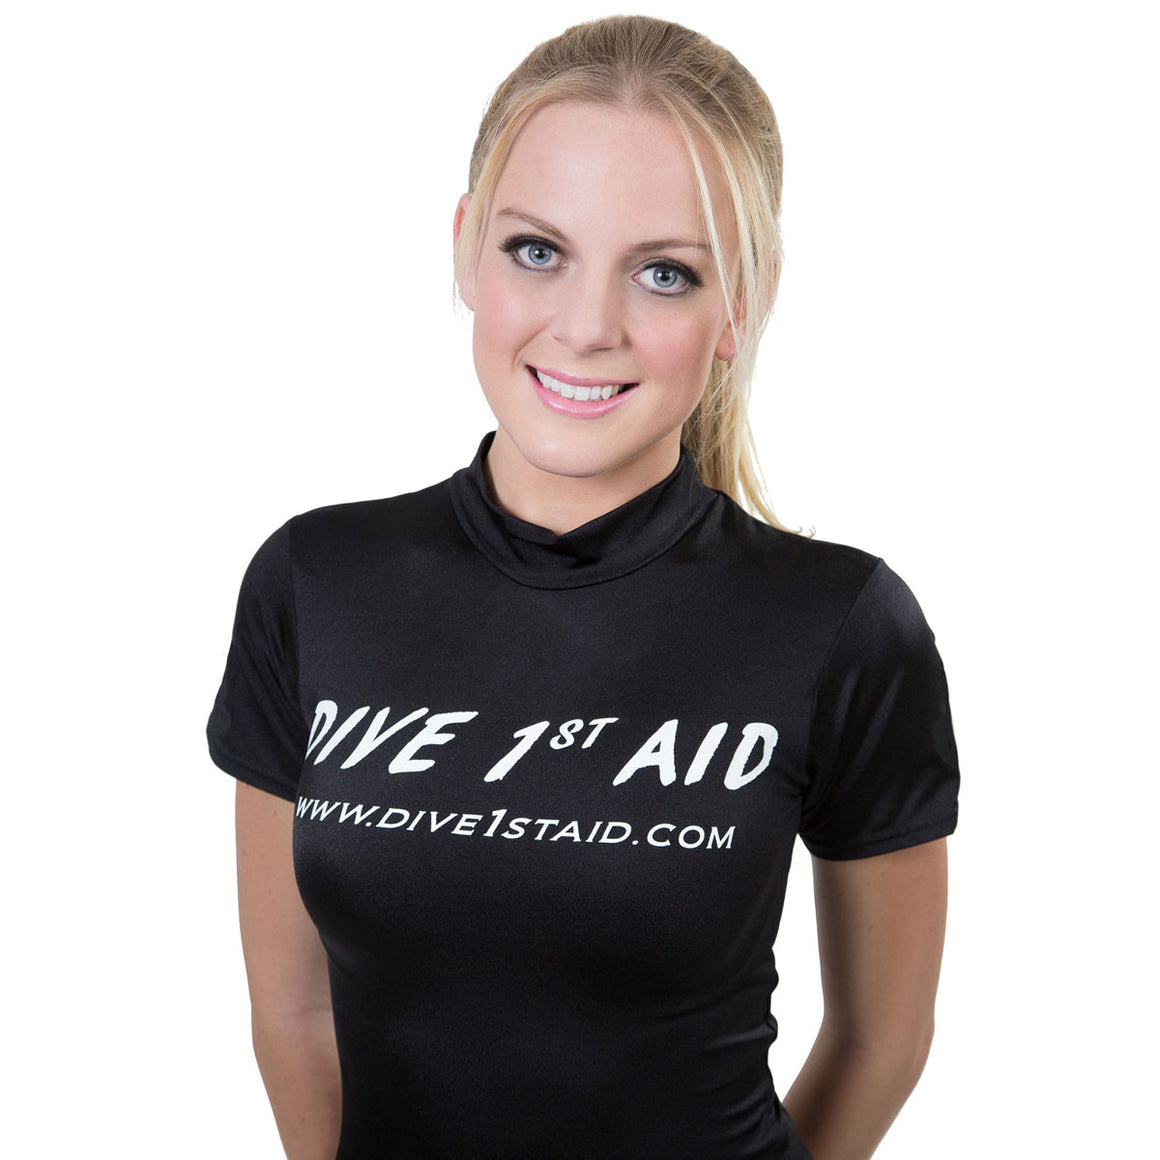 Dive 1st Aid T-Shirt